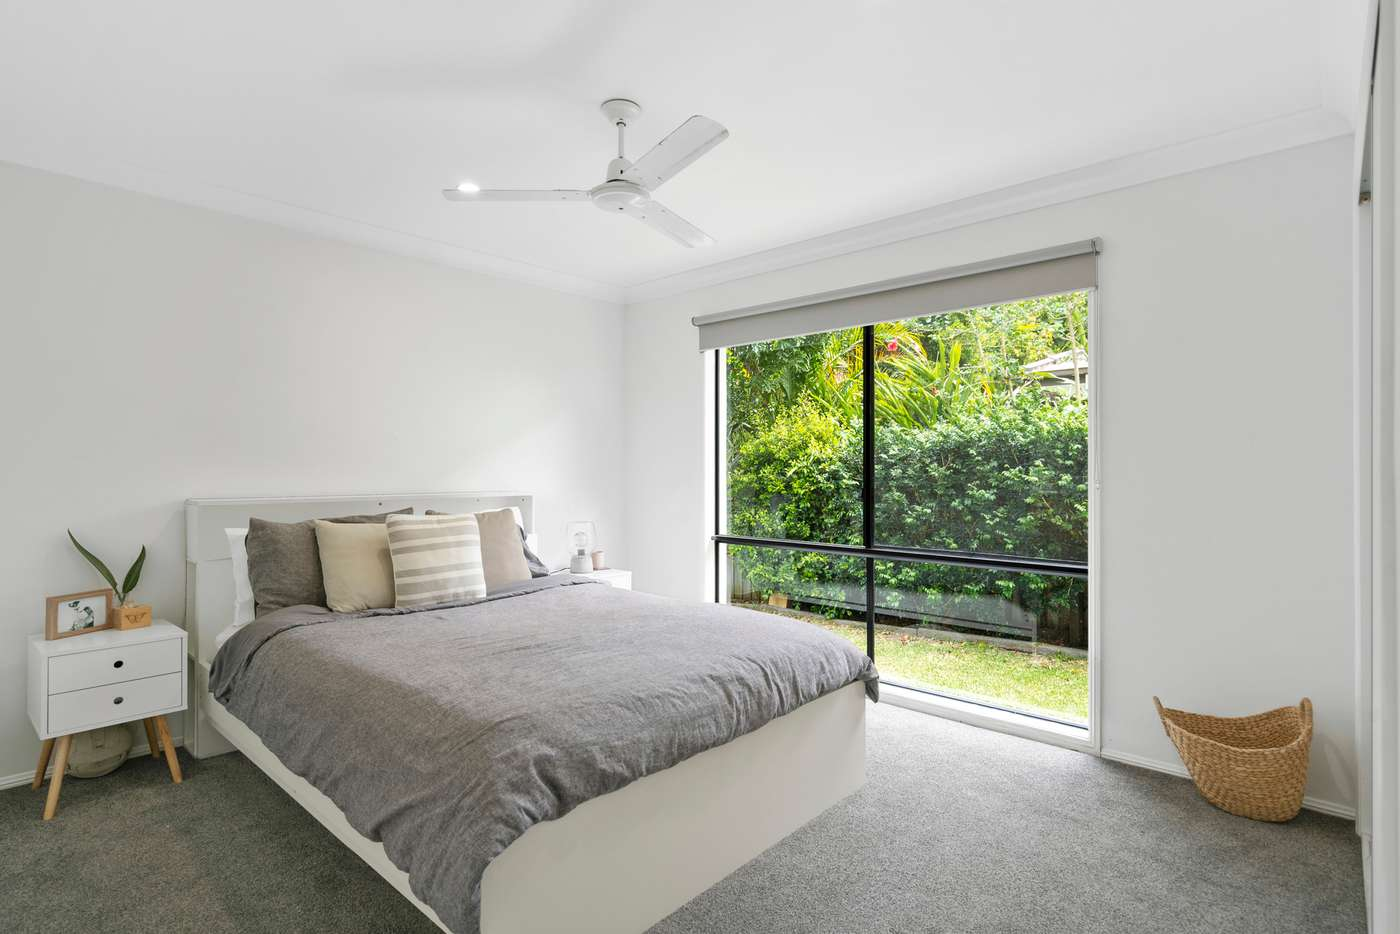 Sixth view of Homely house listing, 11 Riviera Crescent, Peregian Springs QLD 4573